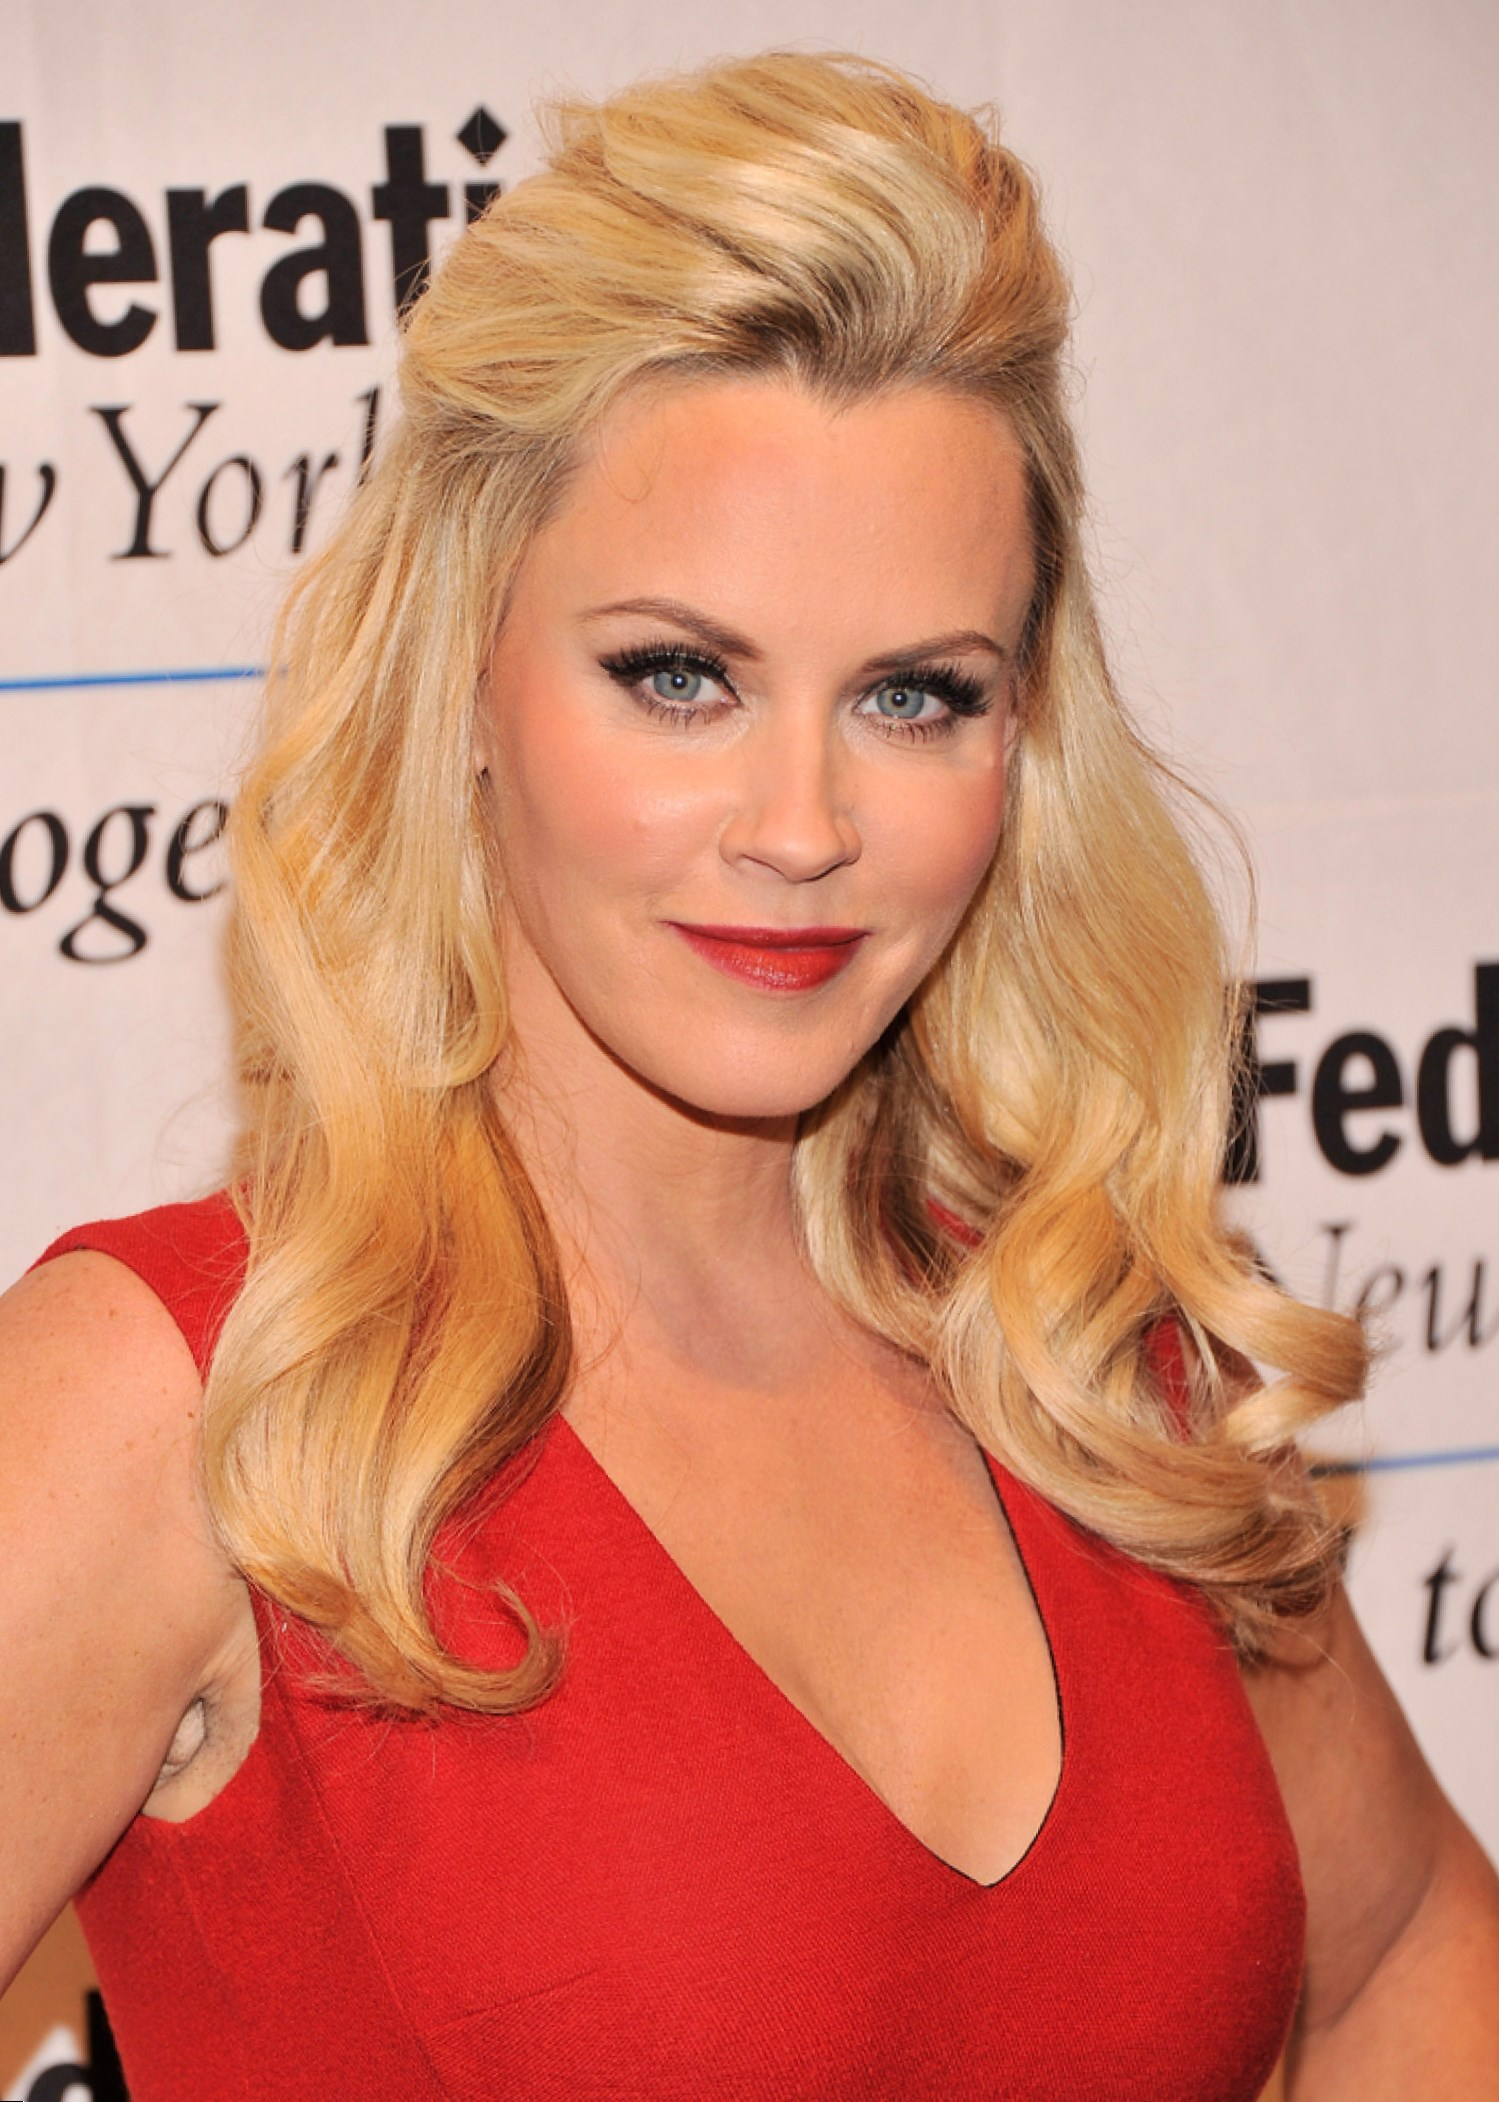 Jenny Mccarthy Lovers Changes Photos